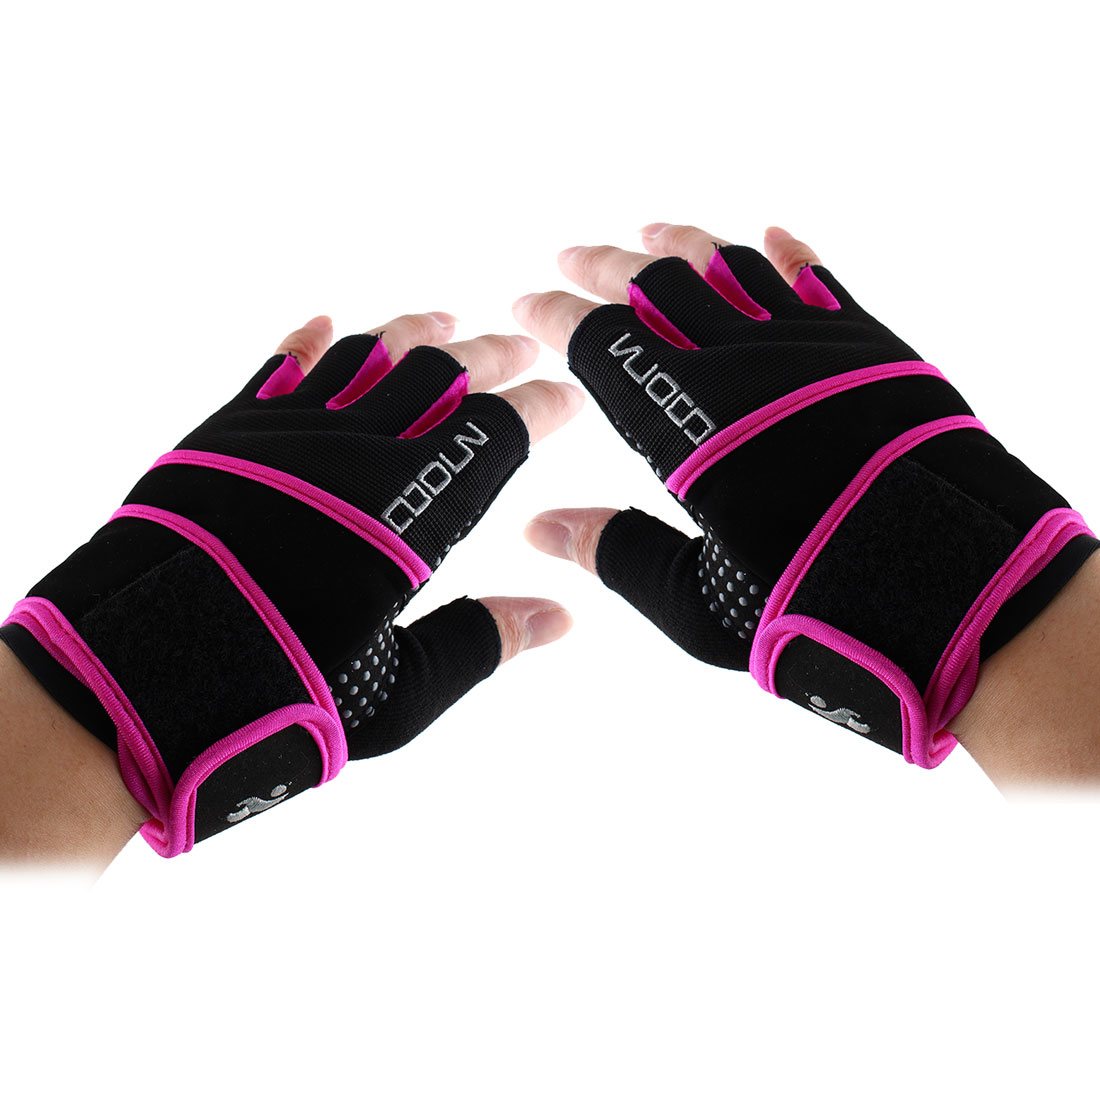 Boodun Authorized Sports Weight Lifting Training Gym Workout Fitness Embroidery Adjustable Anti Slip Half Finger Gloves Purple Size S Pair